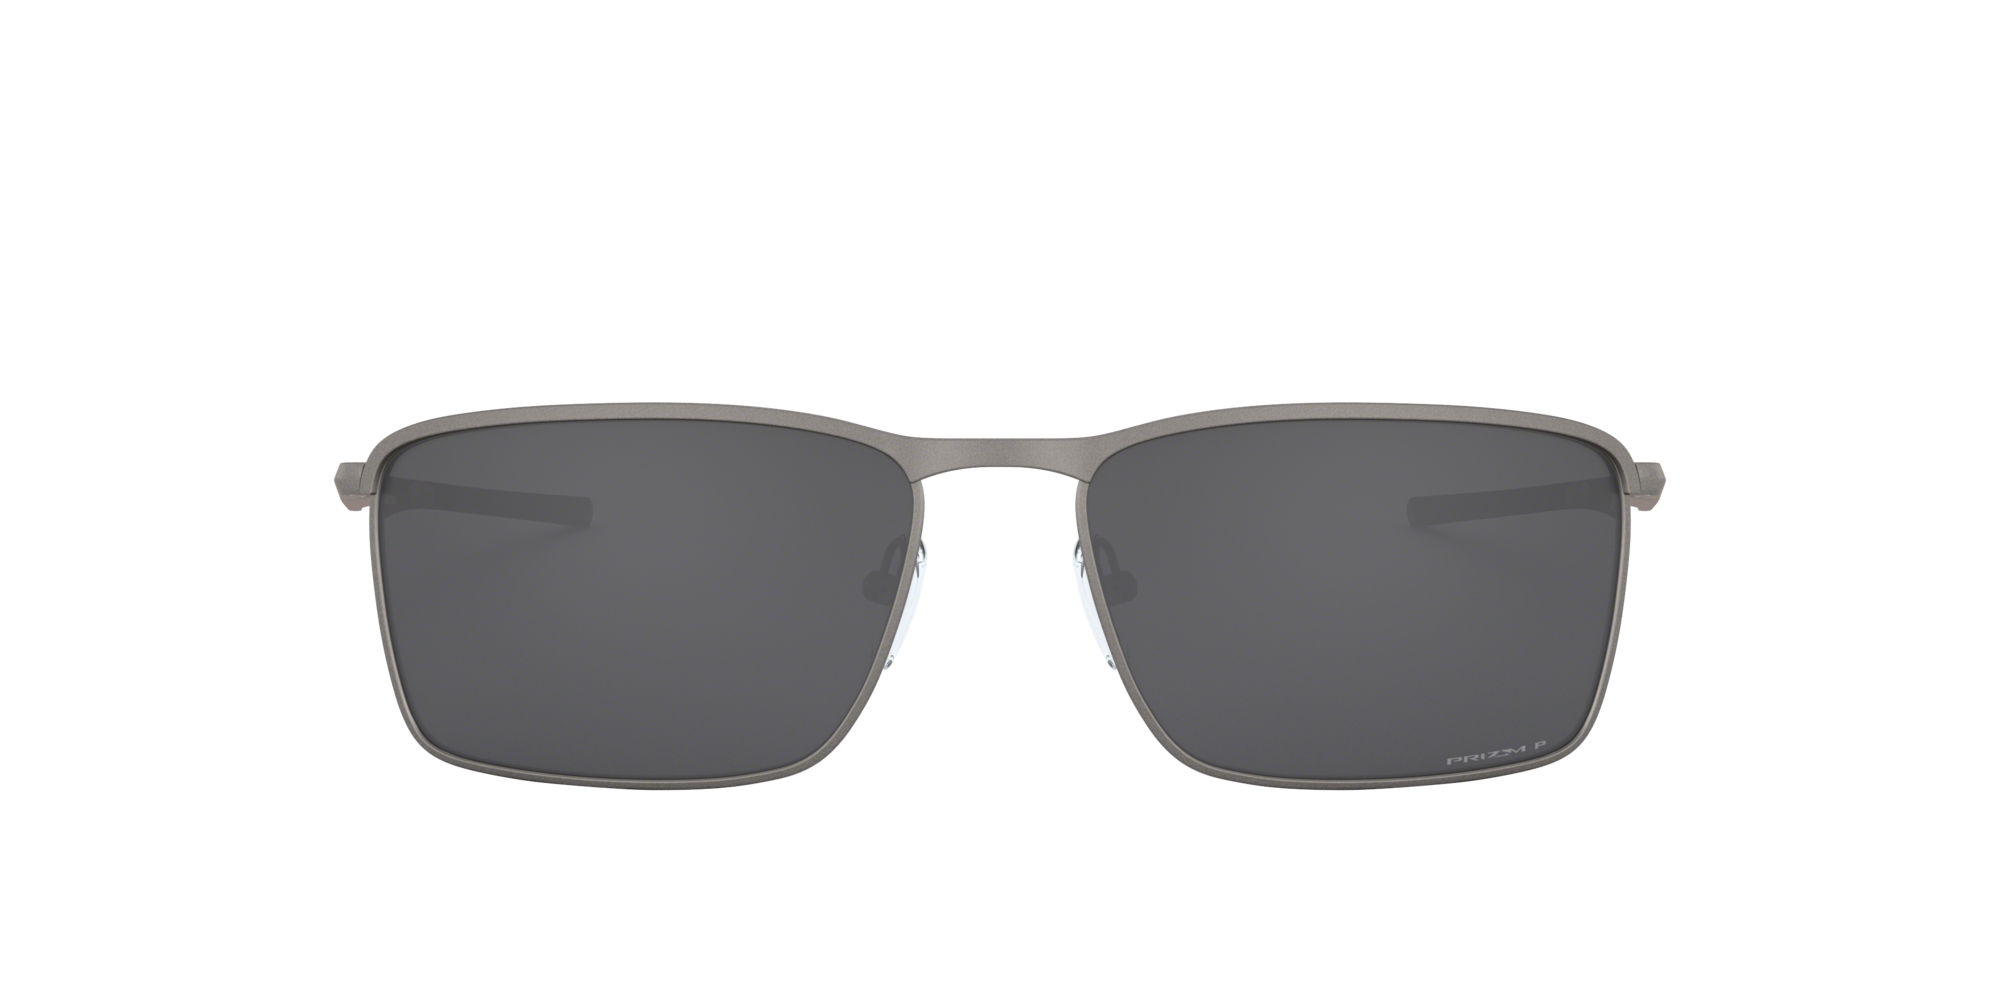 Image for OO4106 58 CONDUCTOR 6 from LensCrafters | Glasses, Prescription Glasses Online, Eyewear